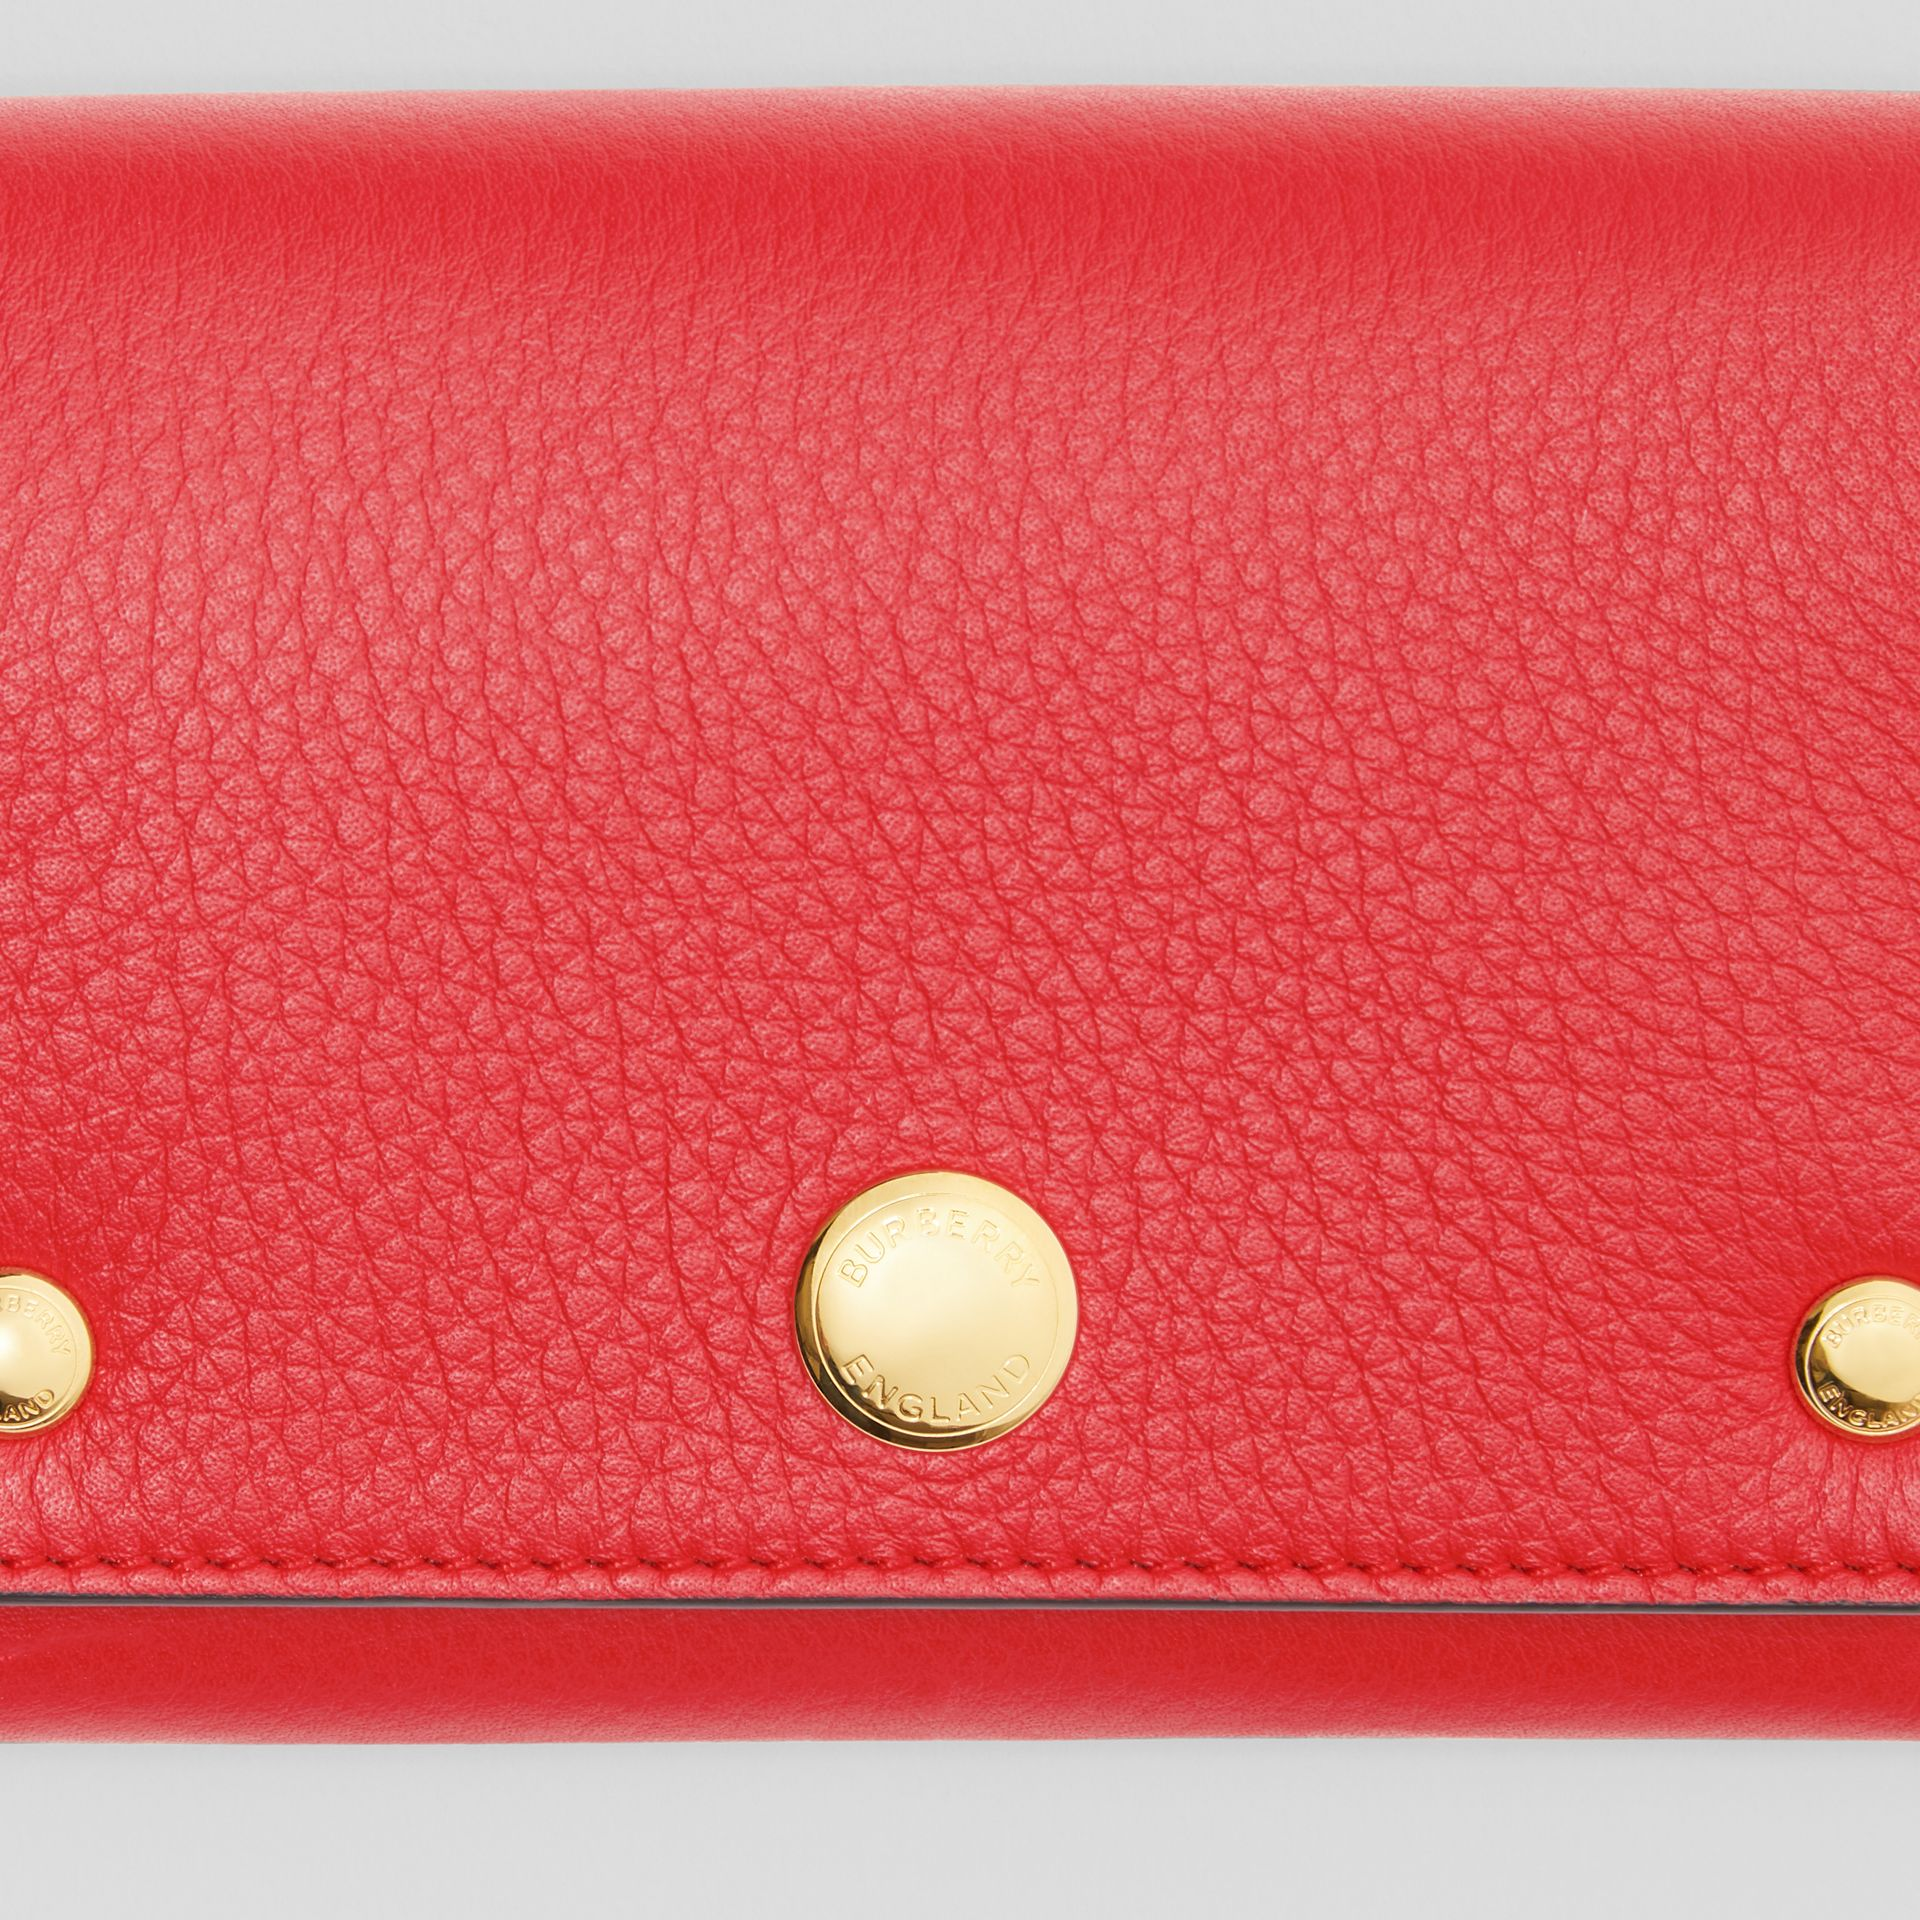 Triple Stud Leather Folding Wallet in Bright Military Red - Women | Burberry United Kingdom - gallery image 1